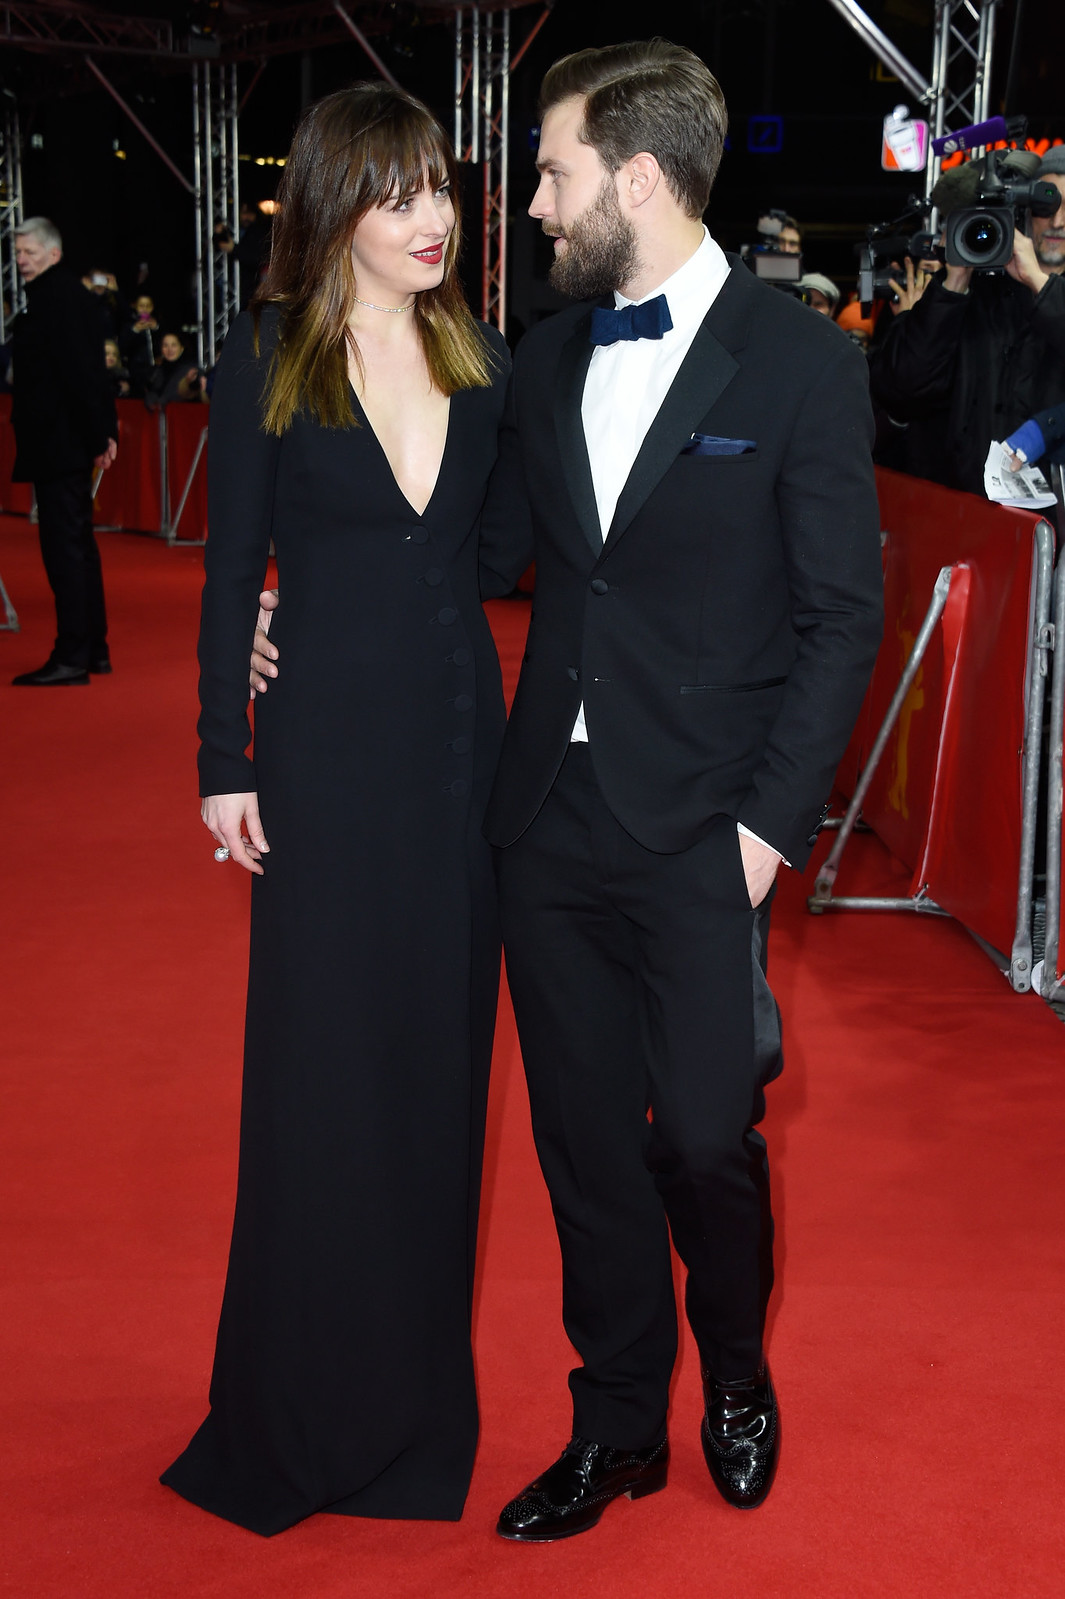 Berlin germany february 11 actress dakota johnson and actor jamie dornan attend the fifty shades of grey premiere during the 65th berlinale